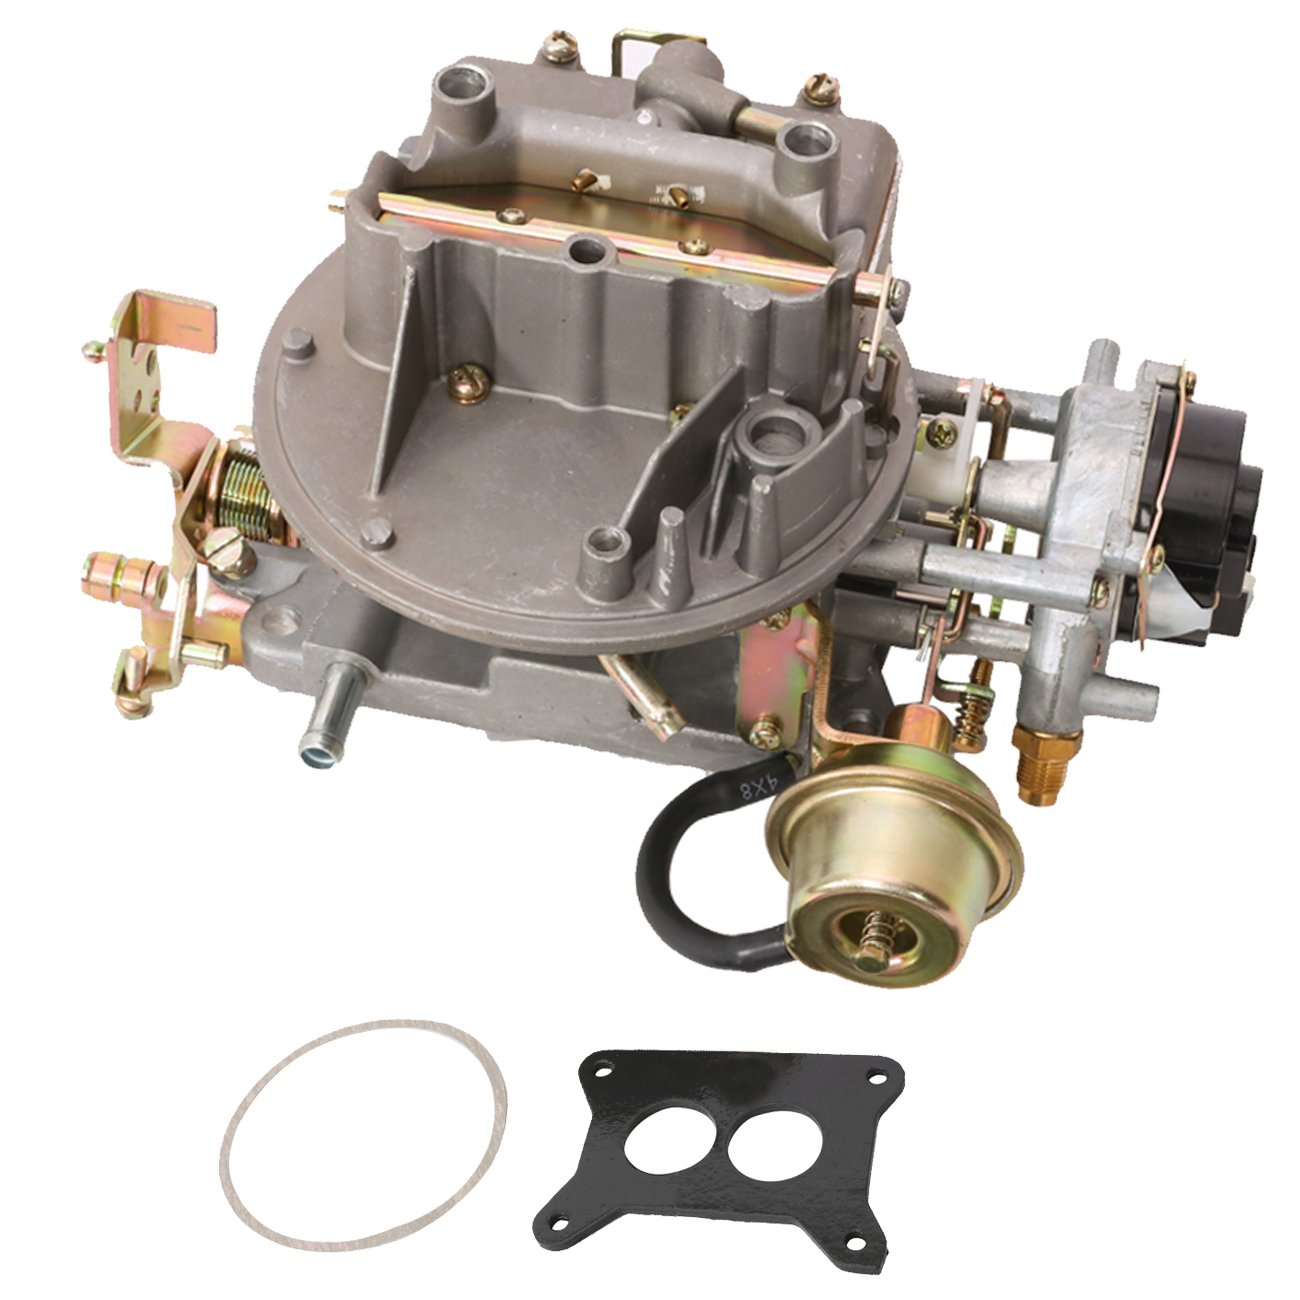 Partol 2 Barrel Carburetor For Ford Mustang F150 F250 1980 Bronco F350 Comet Engine 289 Cu 302 351 Jeep Wagoneer 360 Automatic Choke